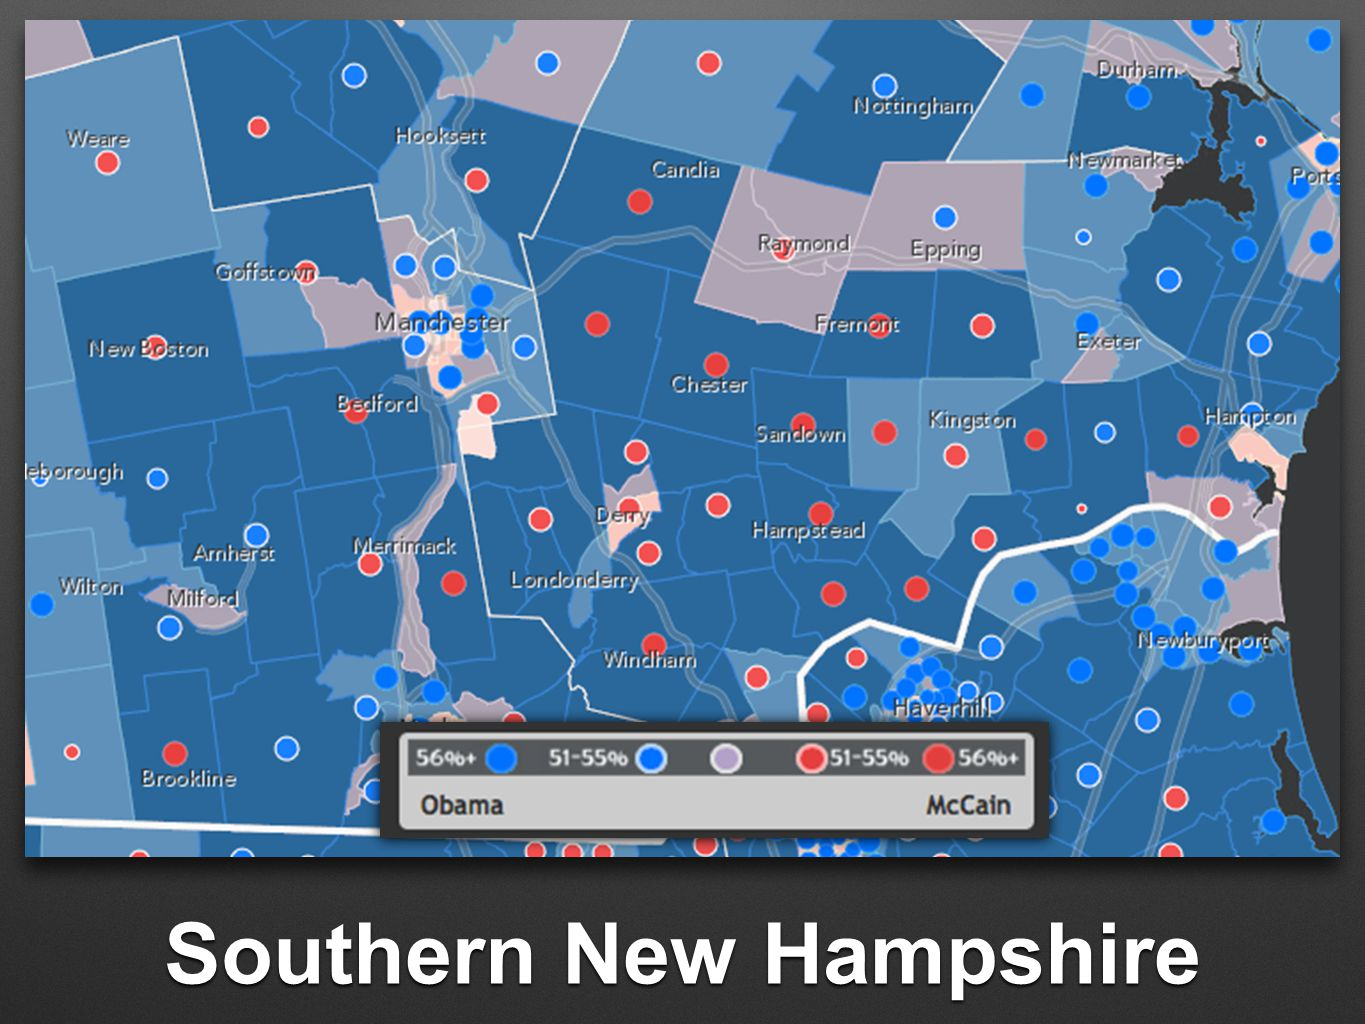 Southern New Hampshire